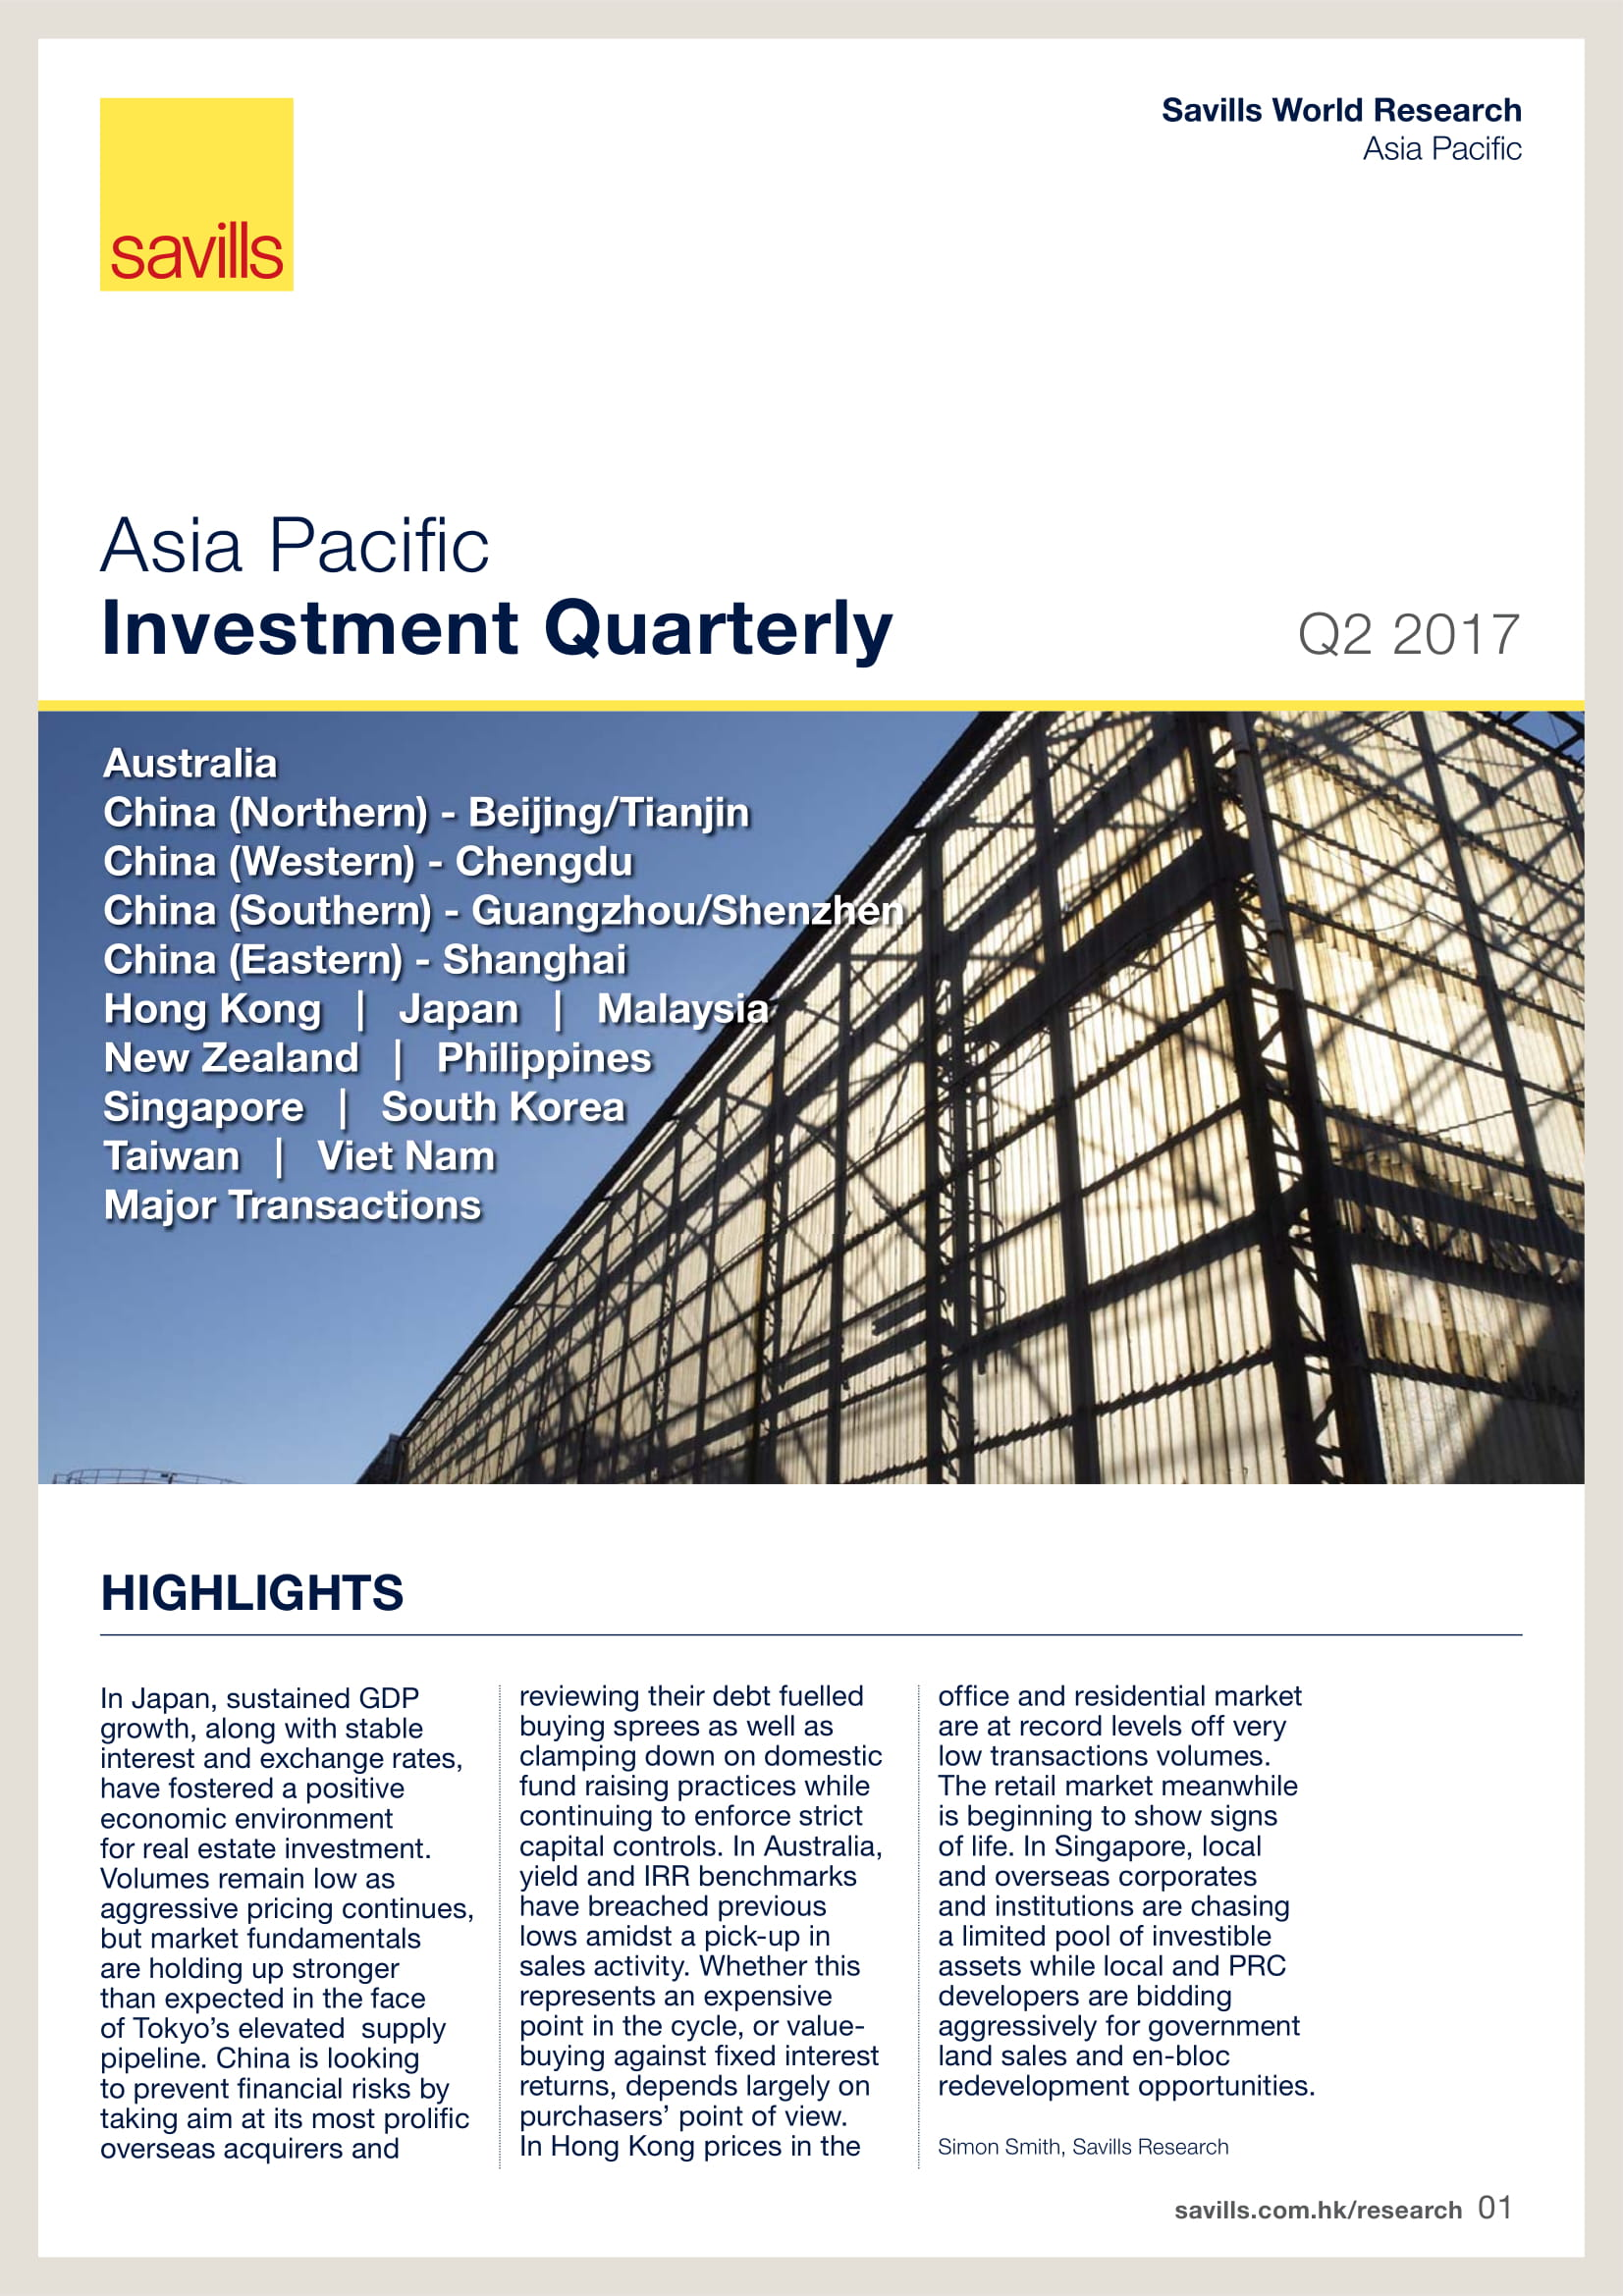 Asia Pacific Investment Quarterly Q2 2017